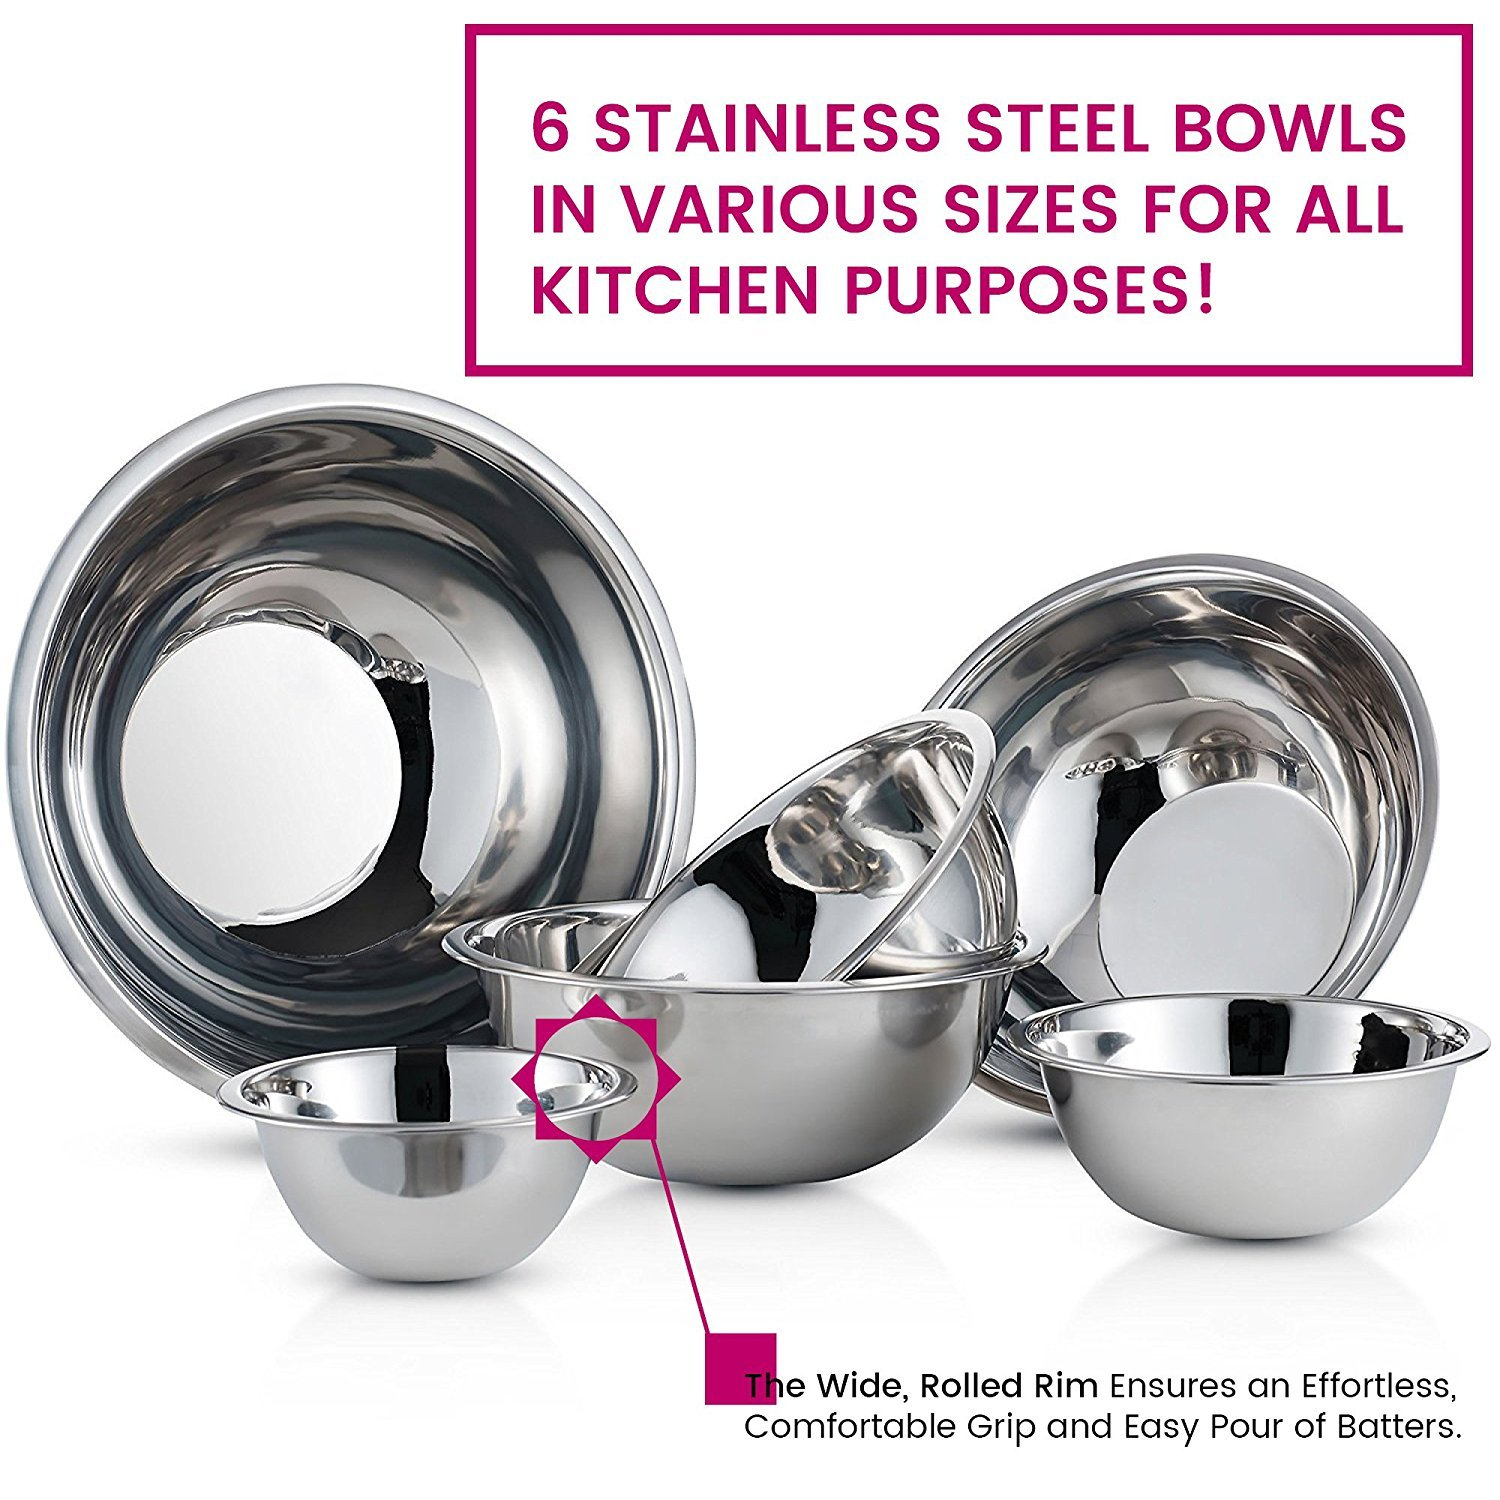 Stainless Steel Mixing Bowls by Finedine (Set of 6) Polished Mirror Finish Nesting Bowl, ¾ - 1.5-3 - 4-5 - 8 Quart - Cooking Supplies by FINEDINE (Image #4)